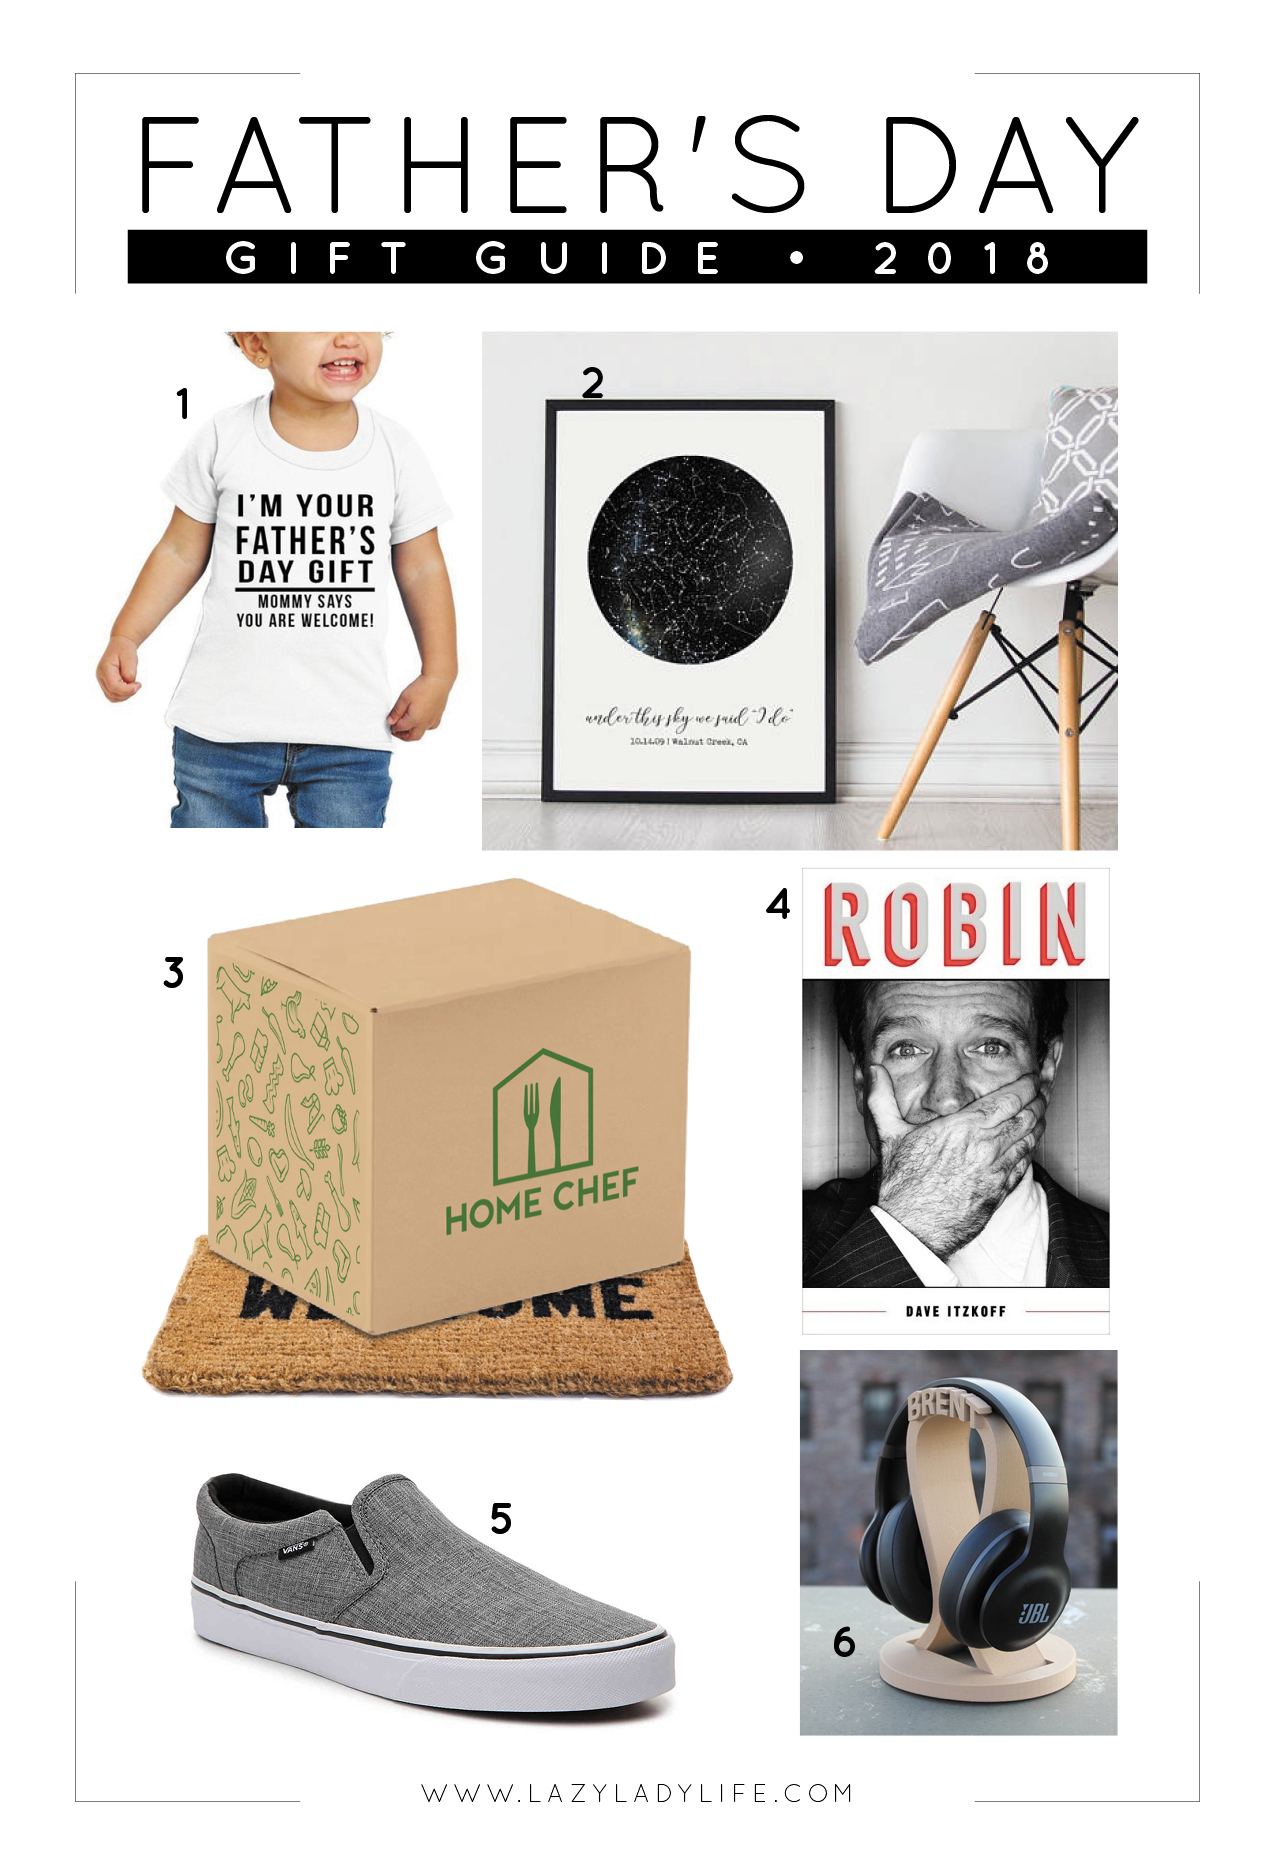 Fathers-Day-Gift-Guide-2018.jpg